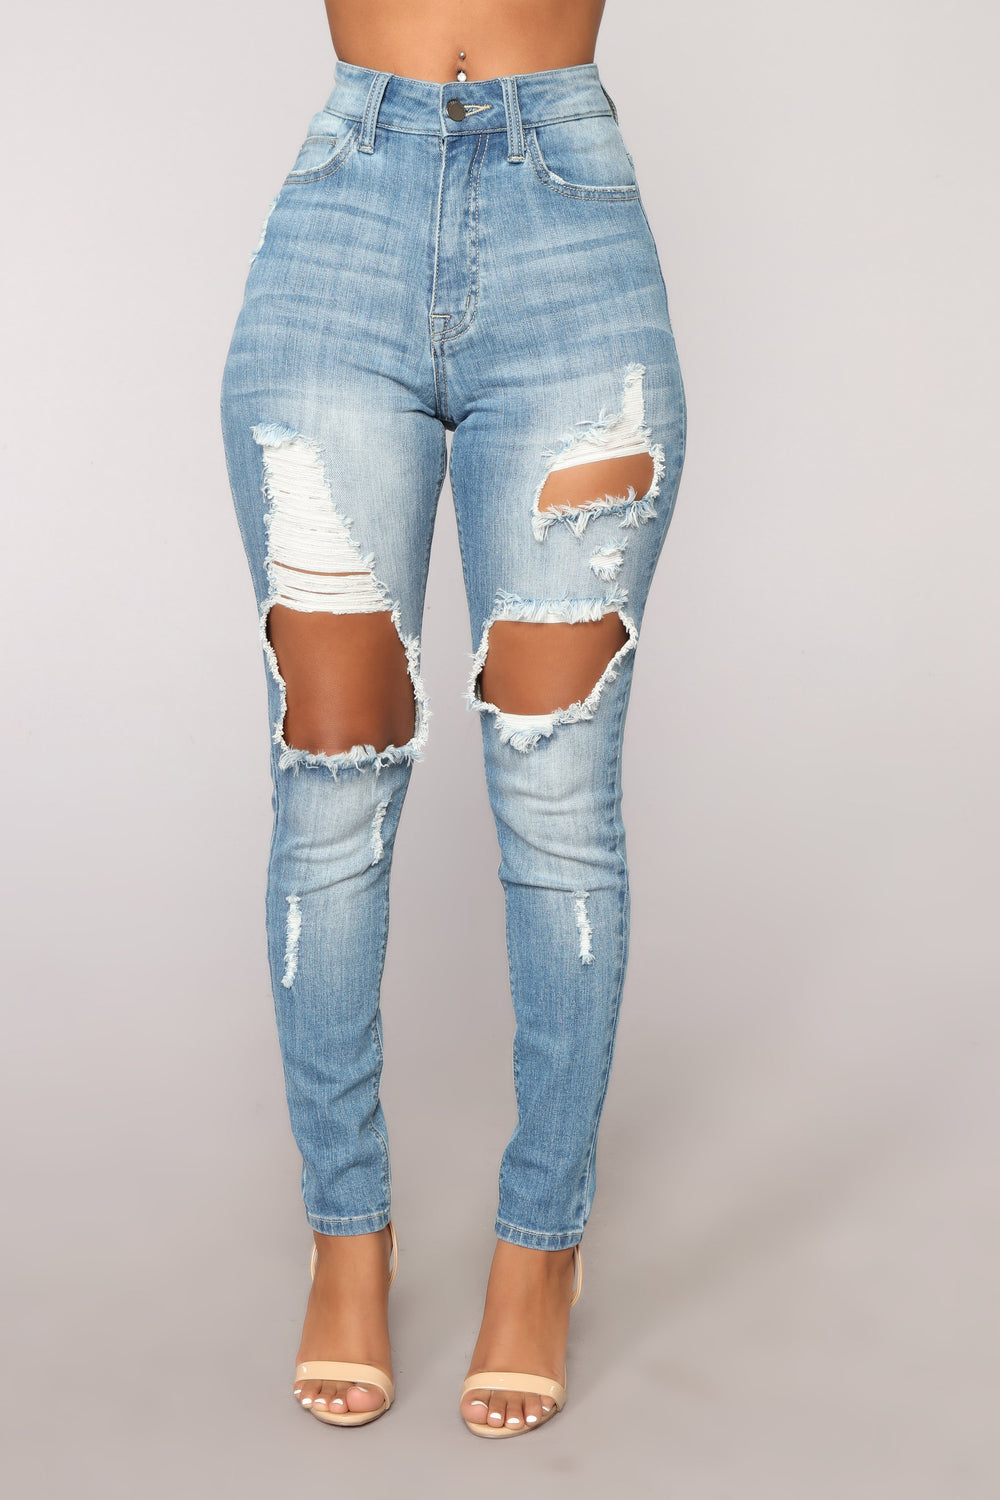 Envy Me Skinny Jeans - Medium Blue Wash